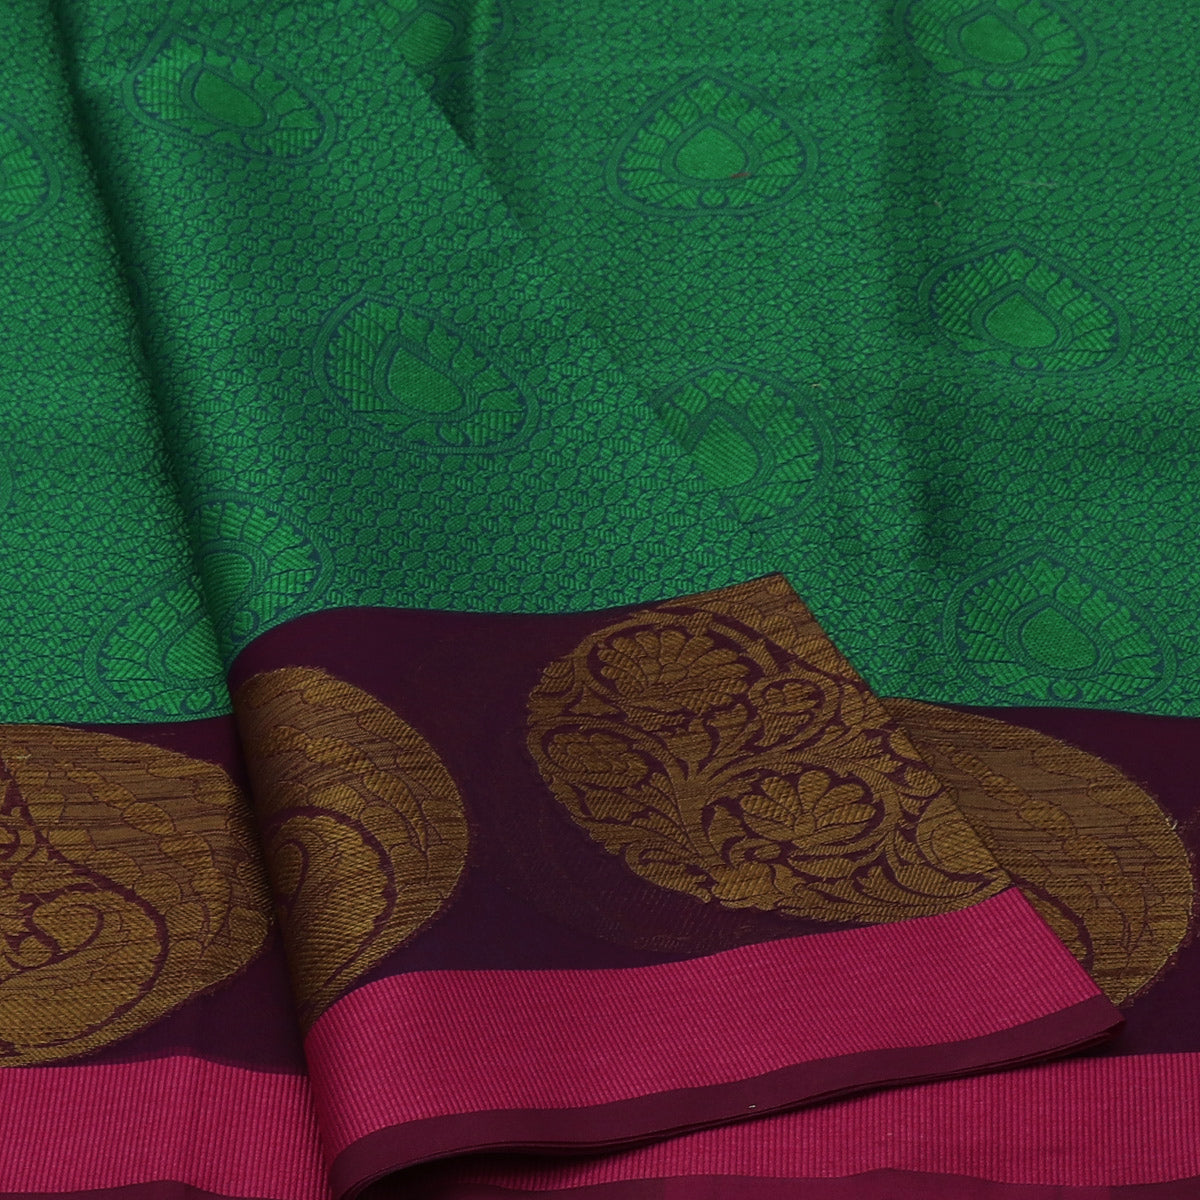 Banarasi Kora Muslin Saree Green and Violet with Round Mango Zari Border